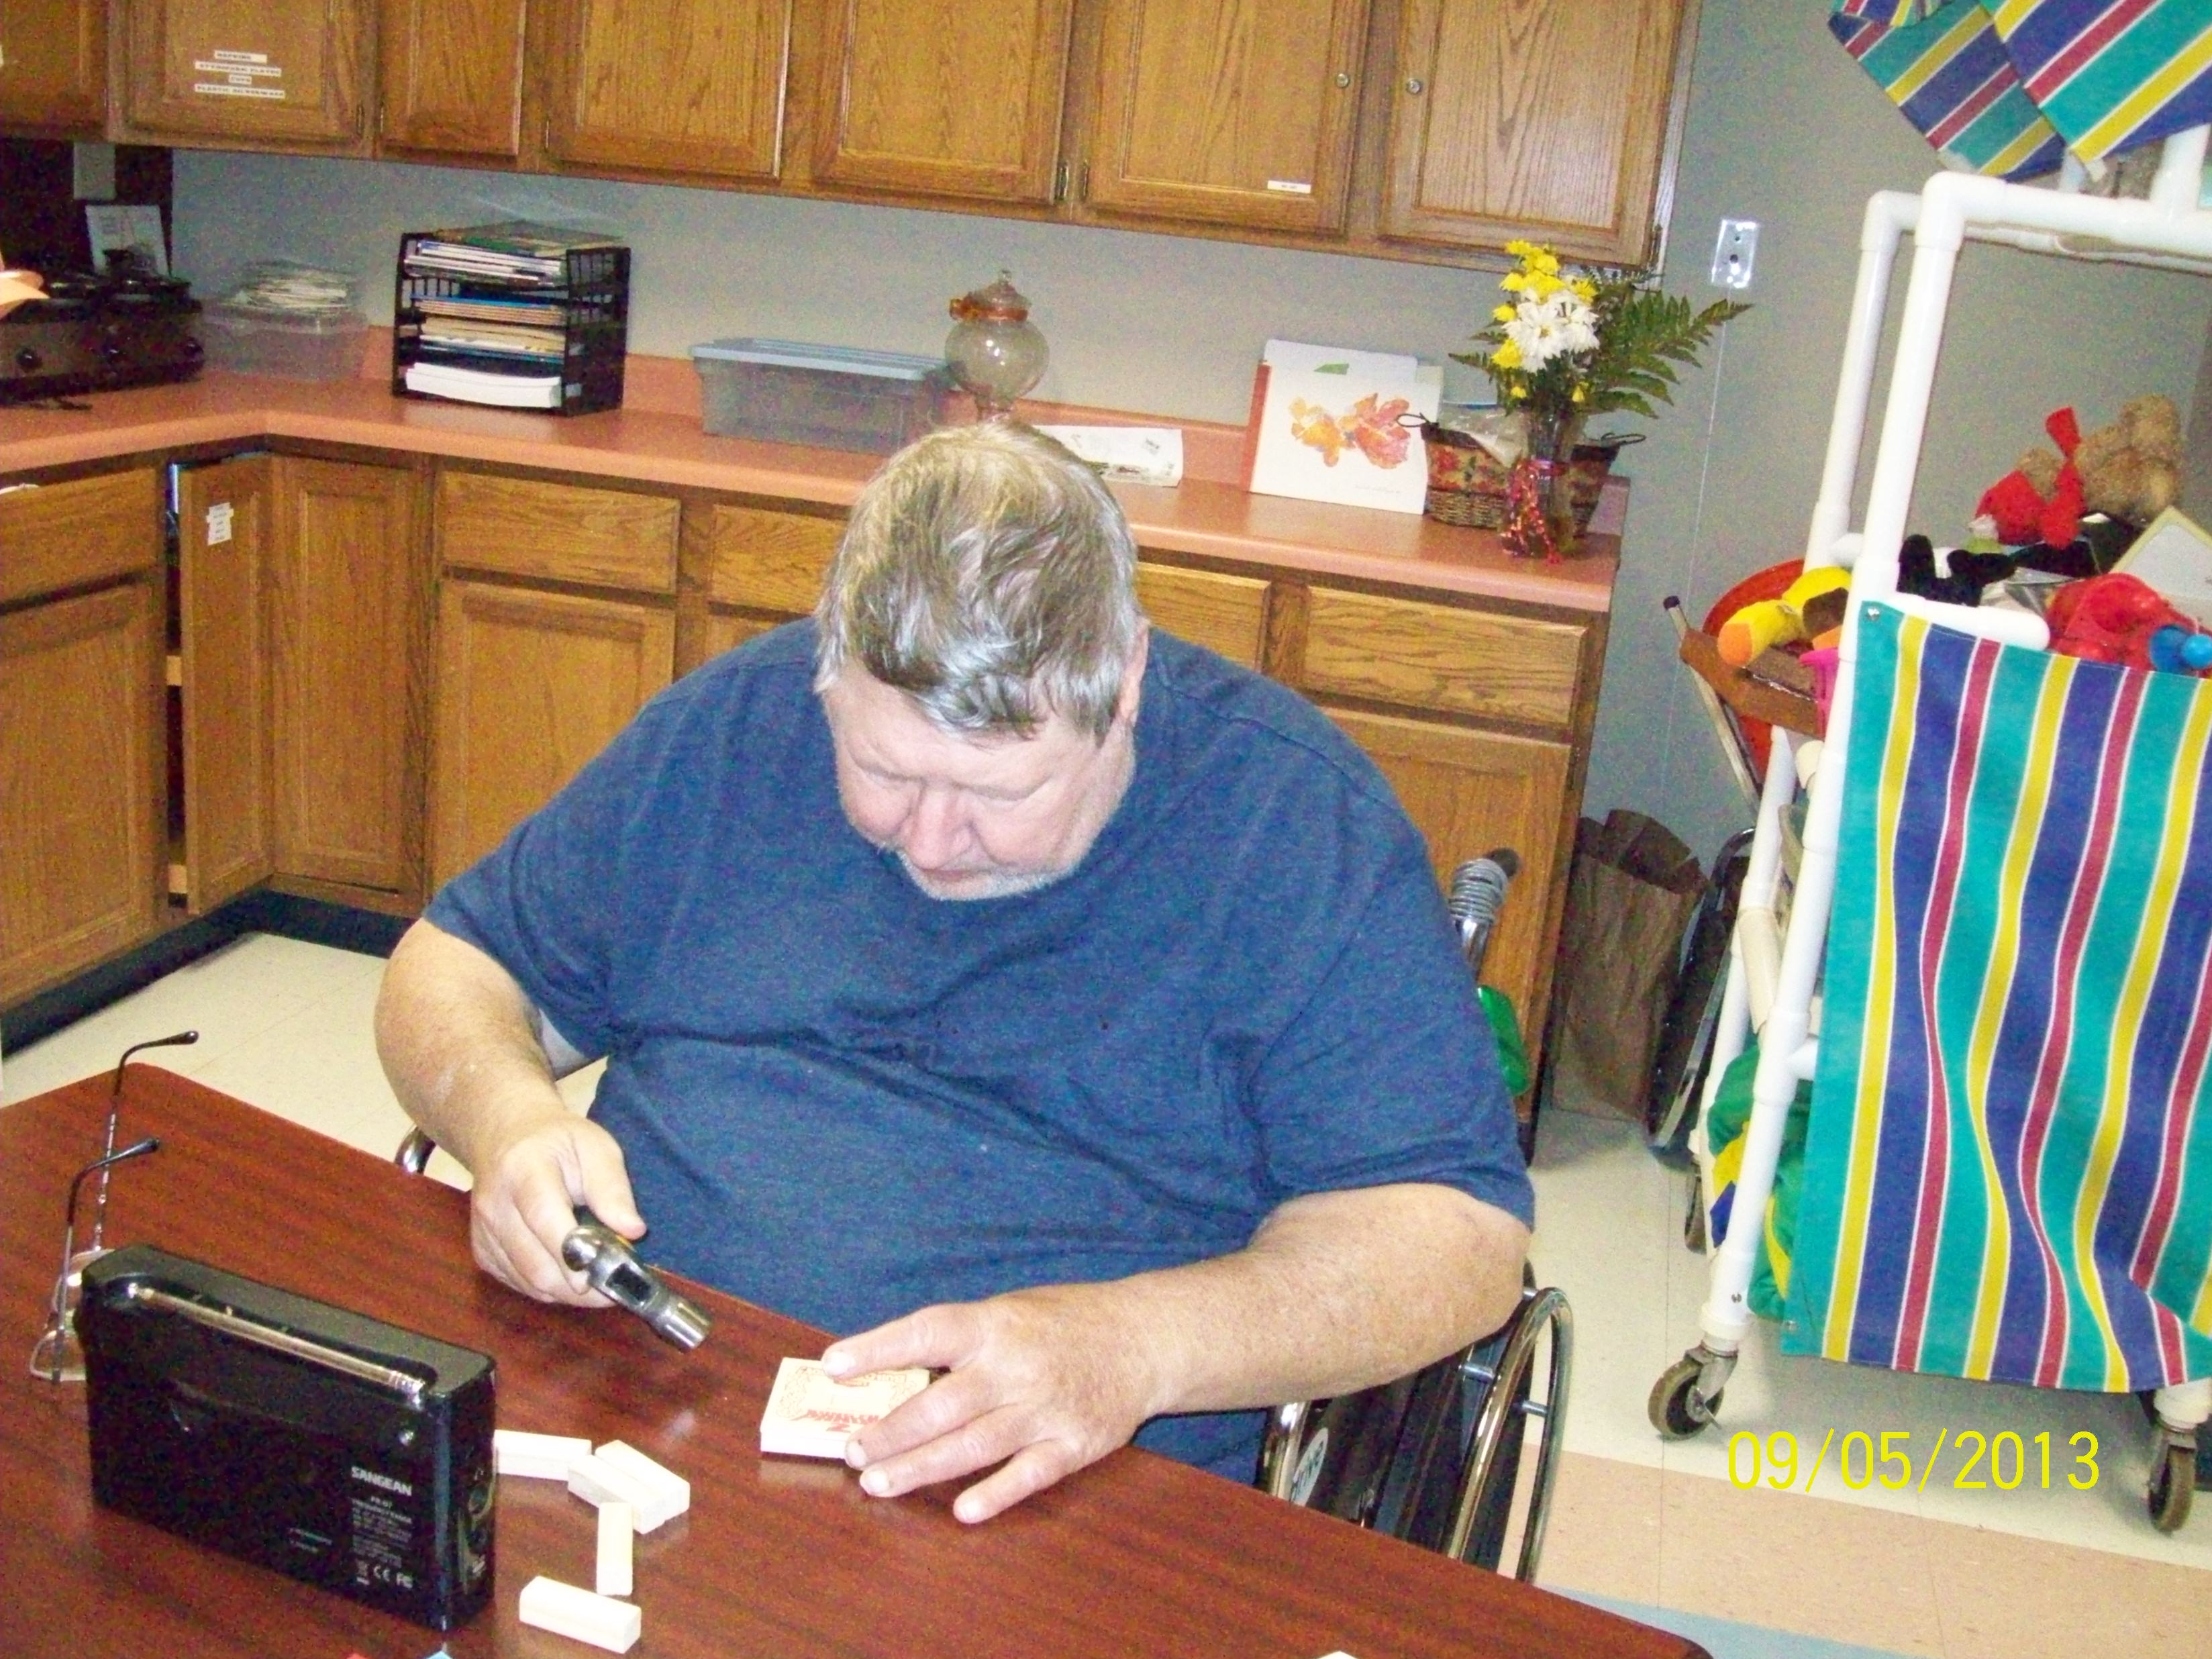 SHC of Fort Wayne residents get hands-on woodworking experience with ...